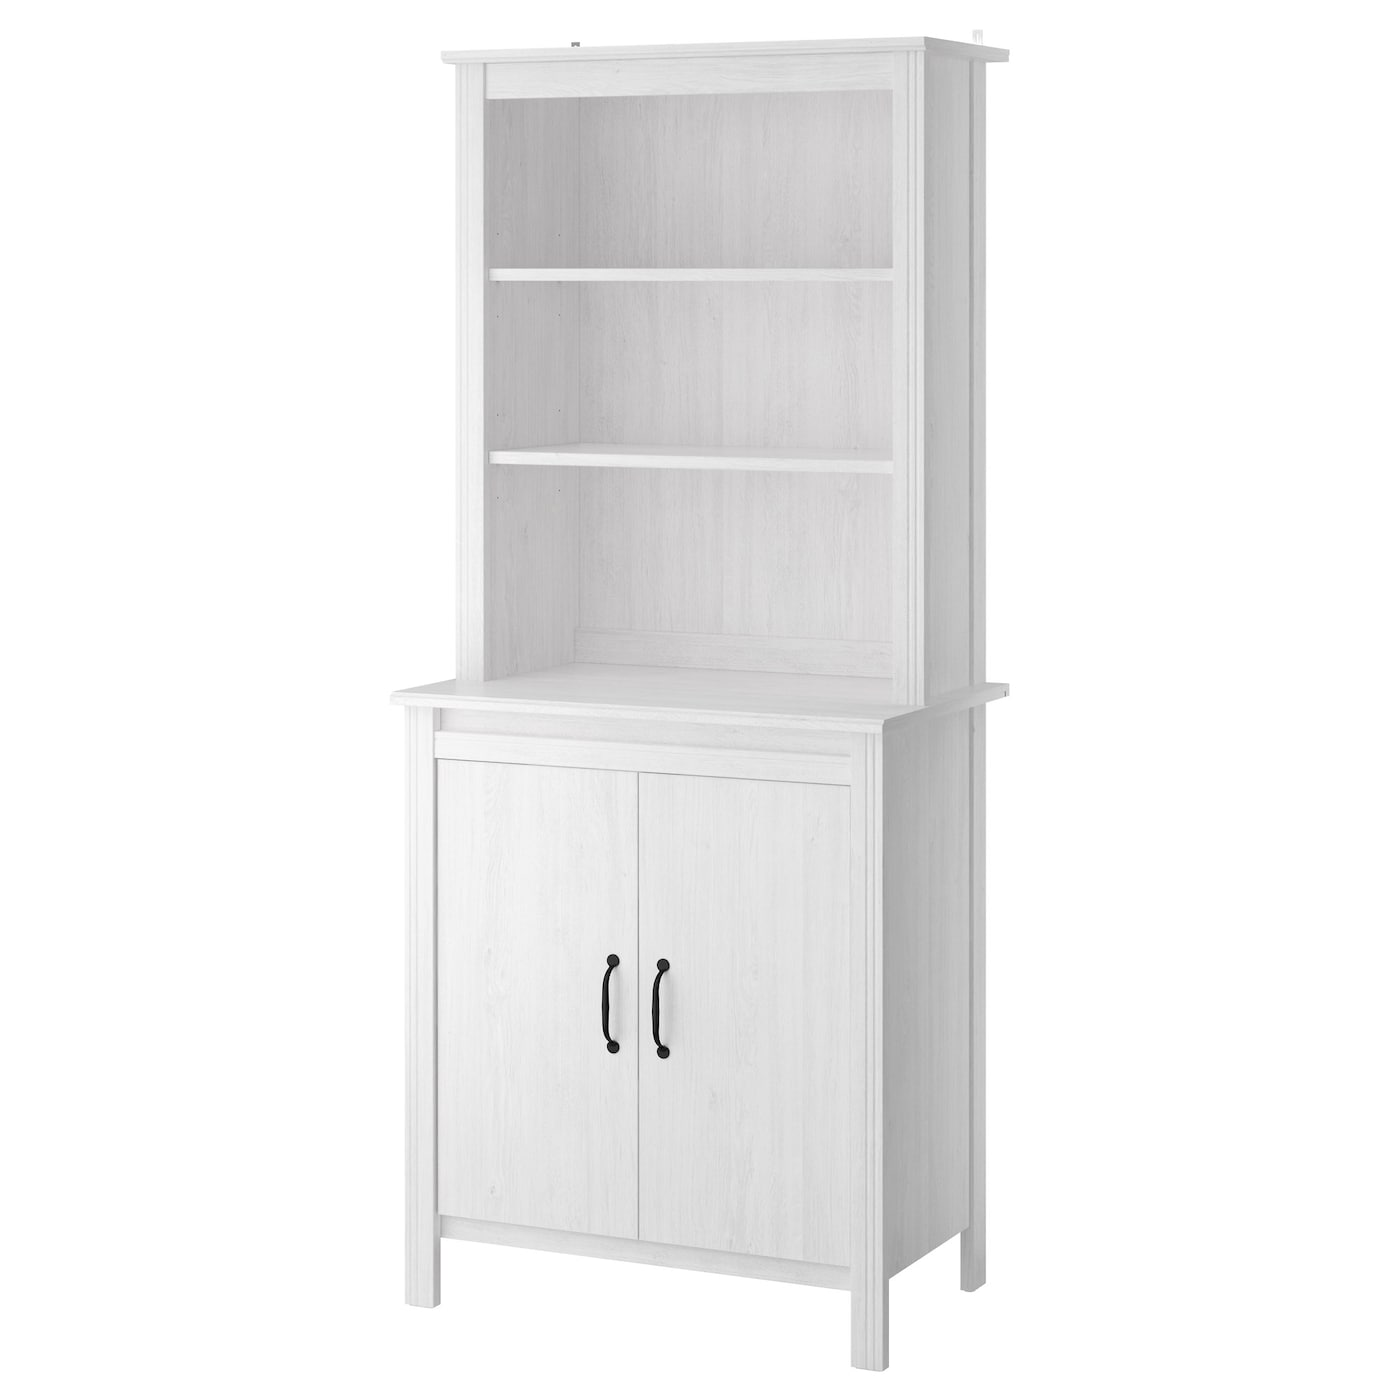 Ikea Brusali High Cabinet With Door Adjule Shelves So You Can Customise Your Storage As